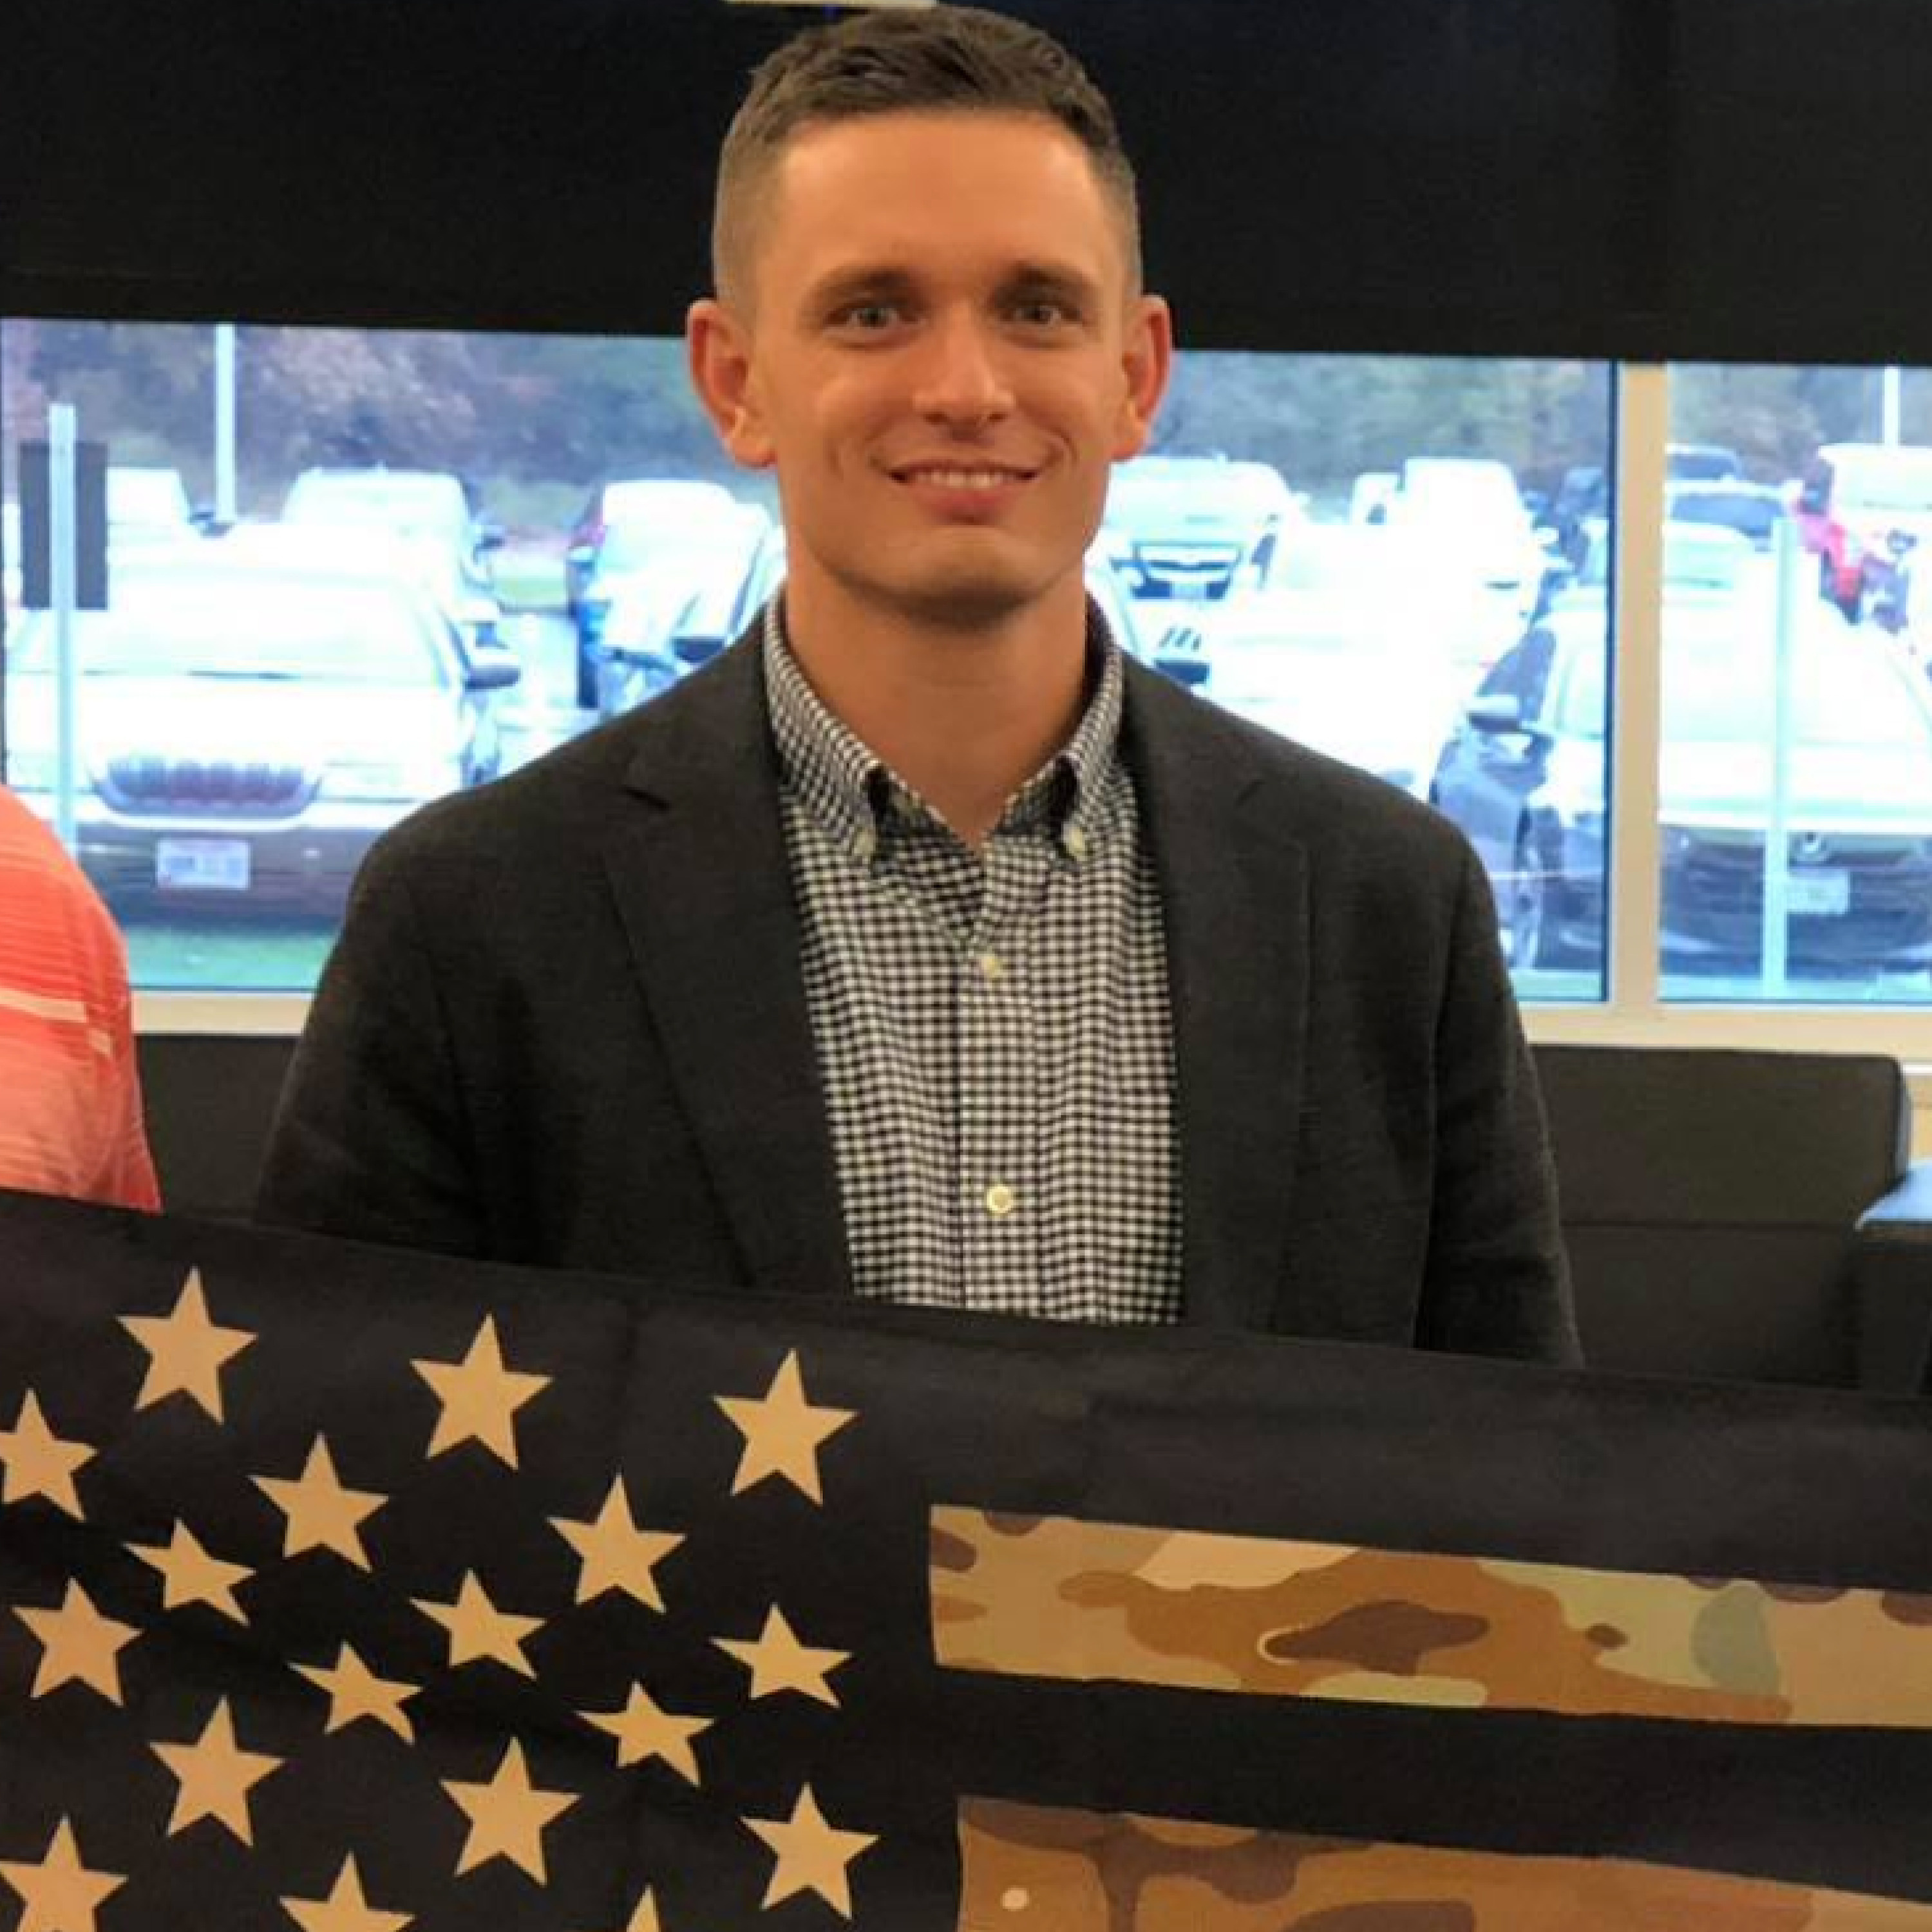 E081: Thank You for Your Service with Dan Berei, the Founder of Combat Flags